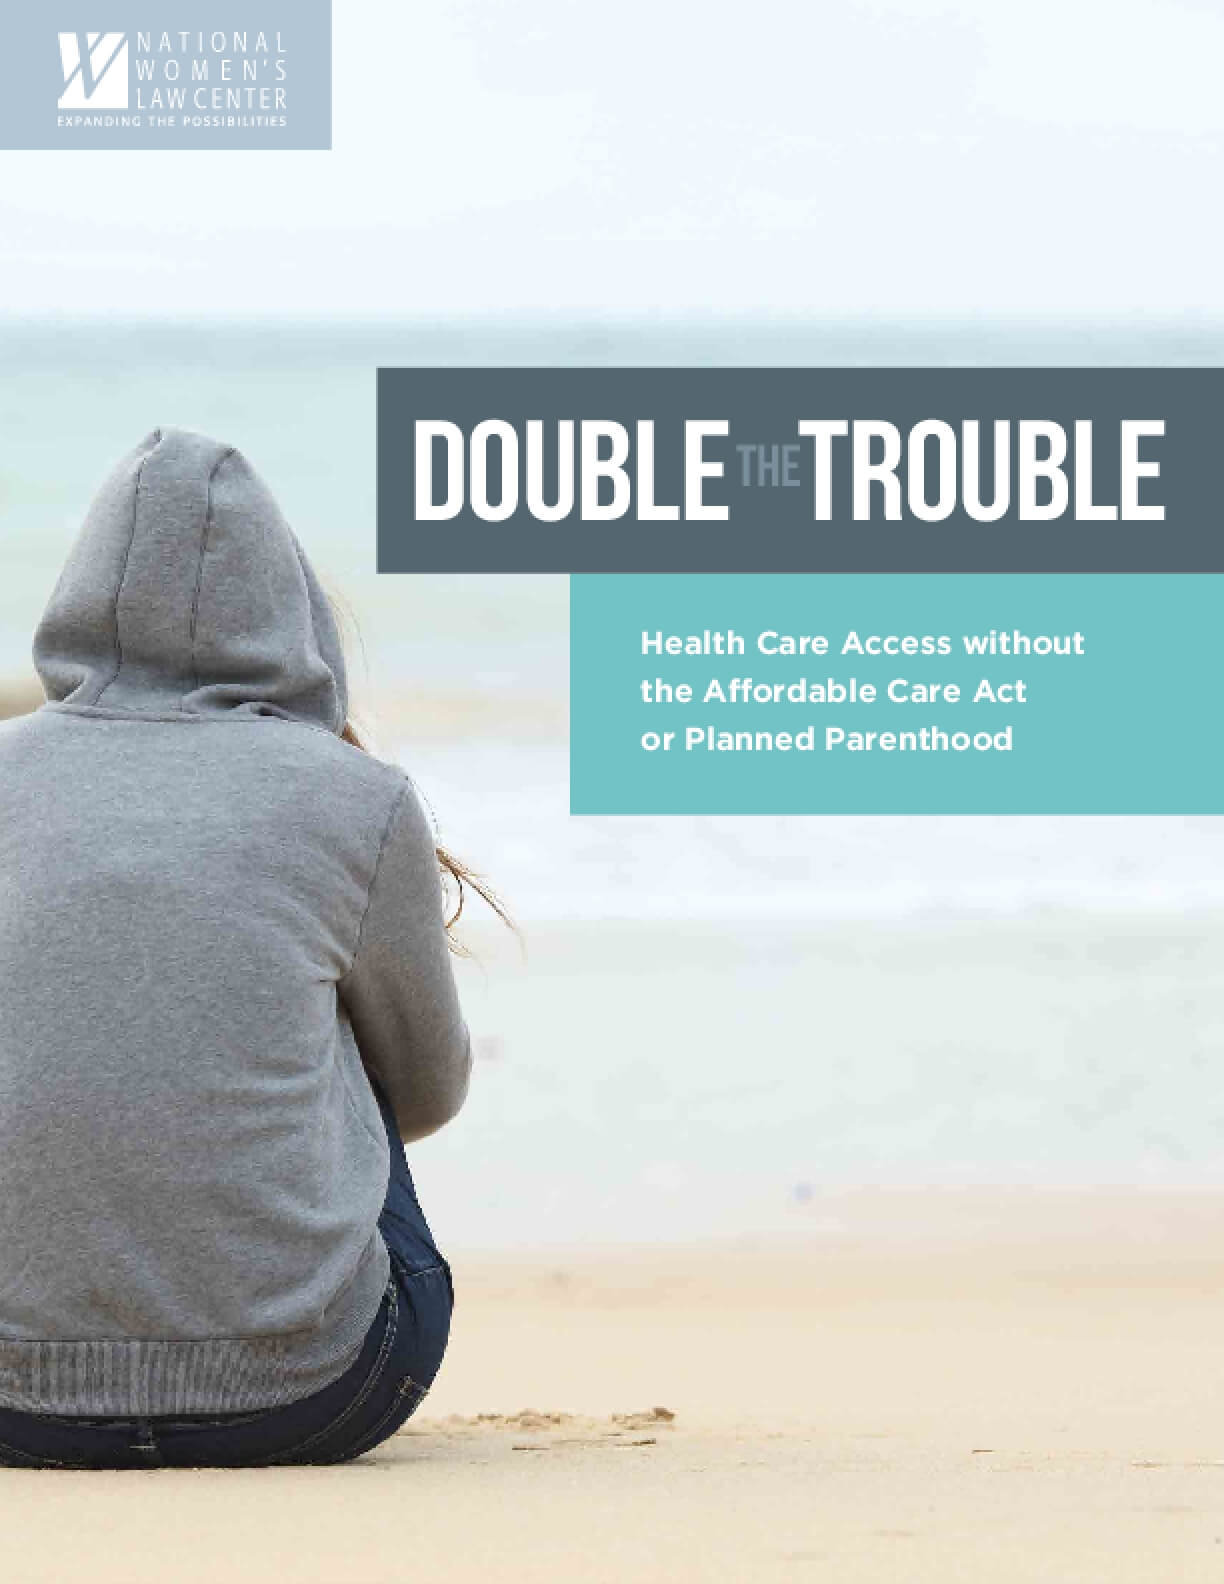 Double the Trouble: Health Care Access Without the Affordable Care Act or Planned Parenthood